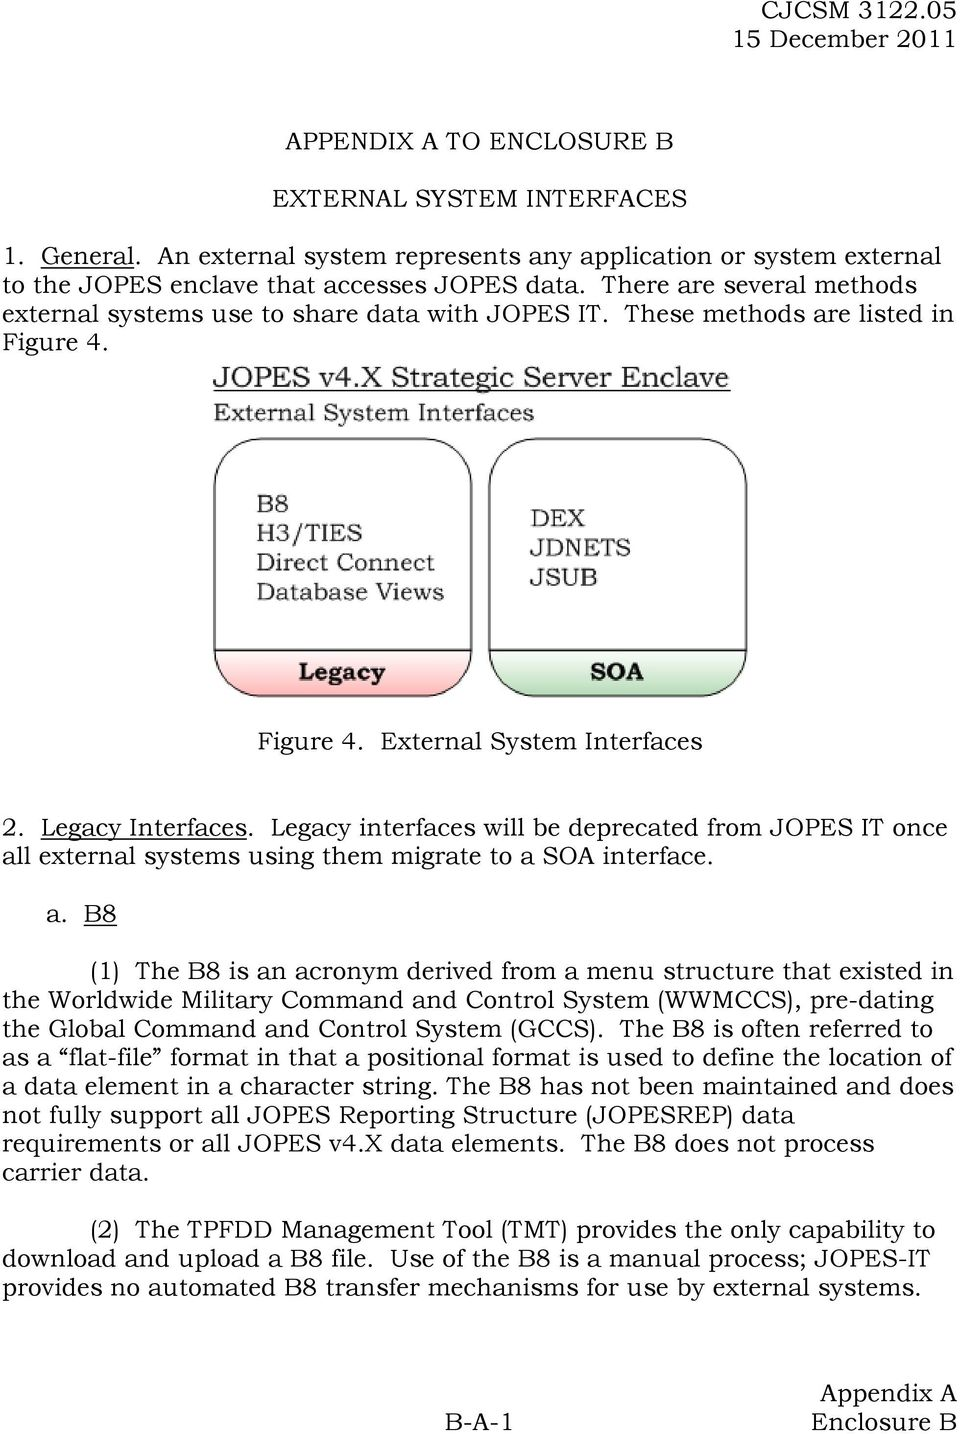 Legacy interfaces will be deprecated from JOPES IT once al